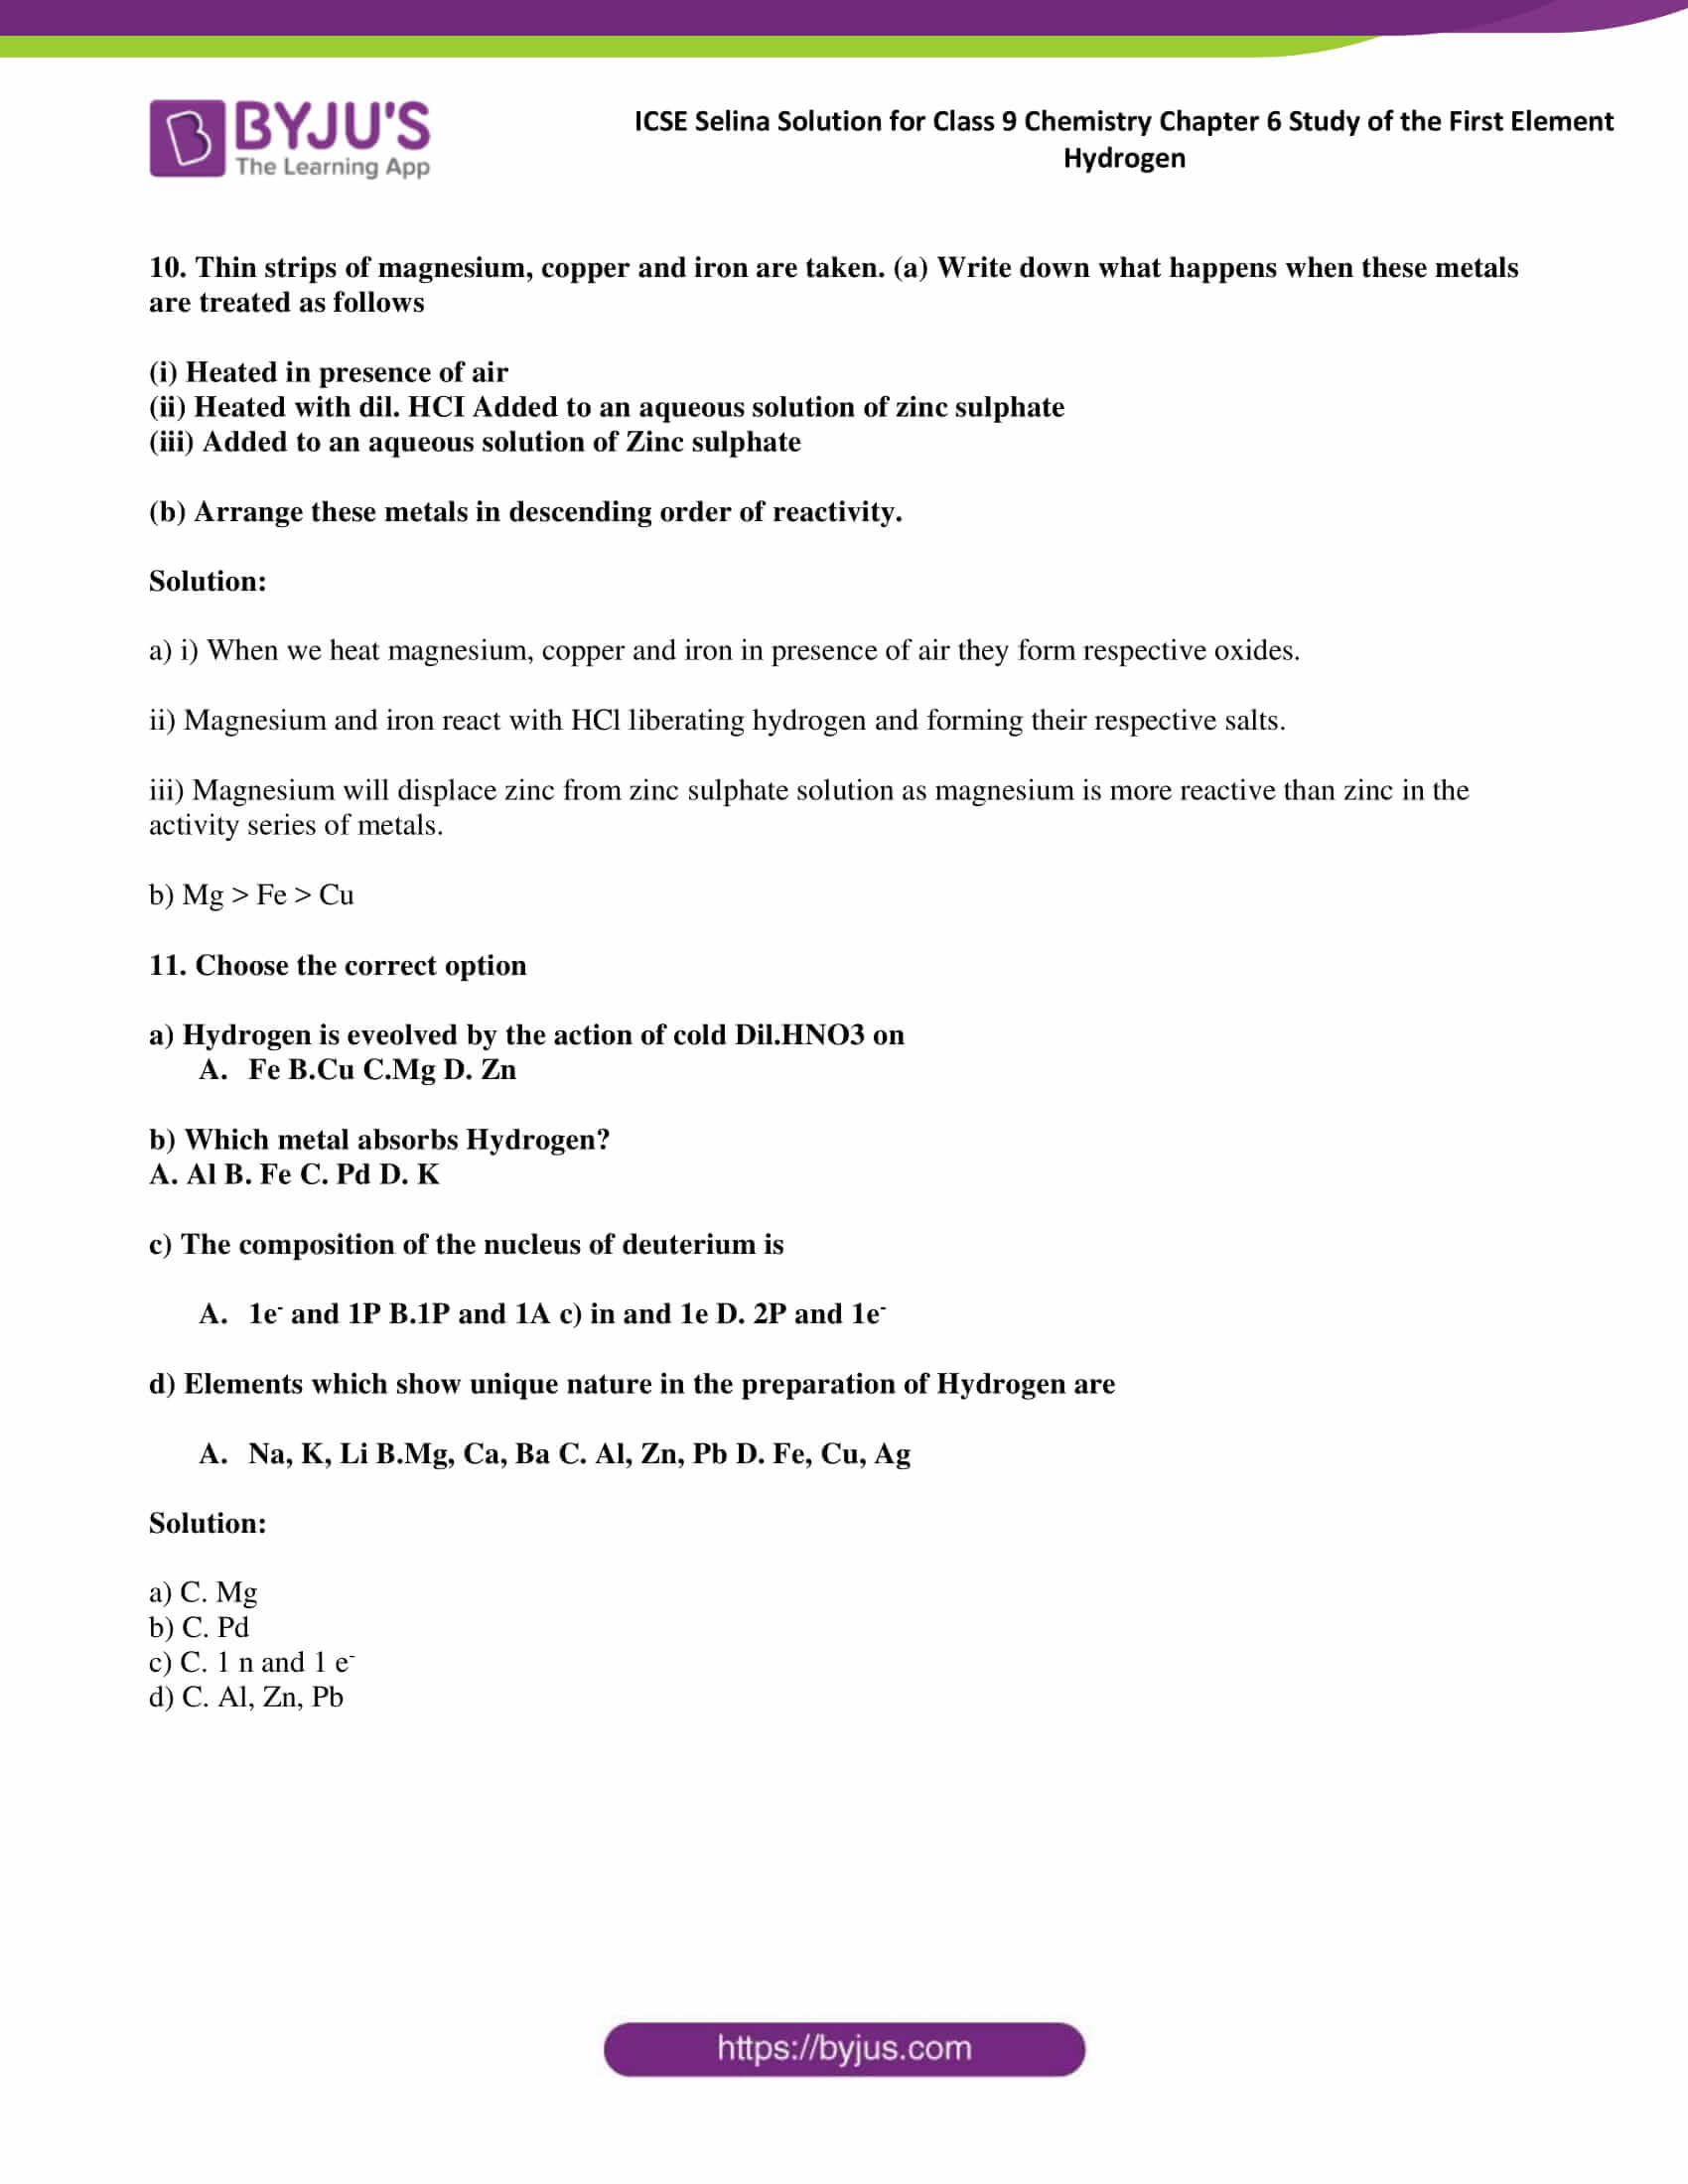 ICSE Selina Solution class 9 Chemistry Chapter 6 Exercise part 08